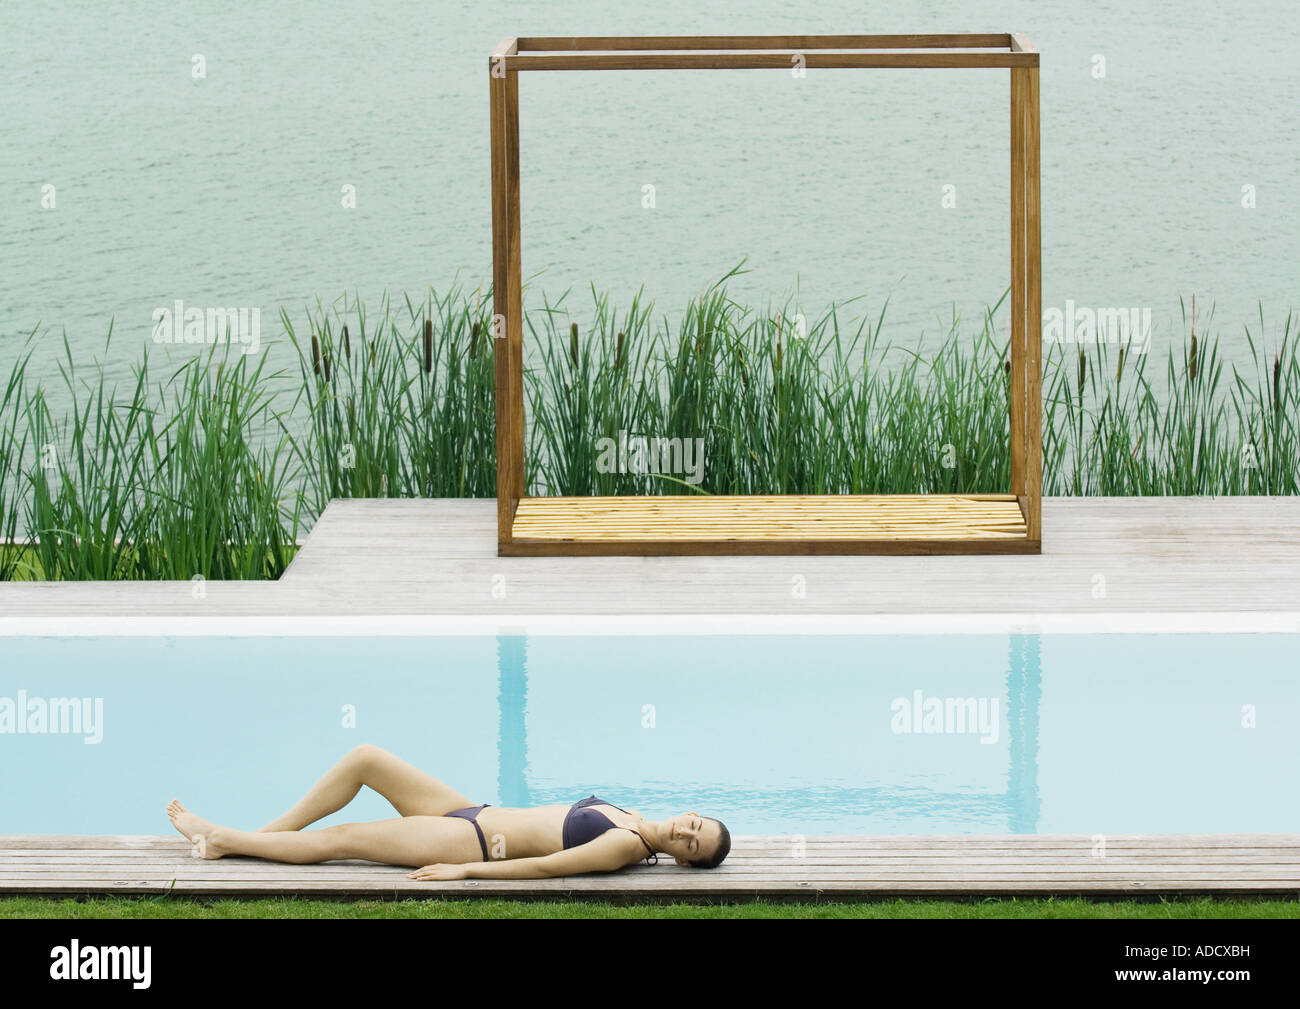 Woman lying on deck near pool, lake in background - Stock Image